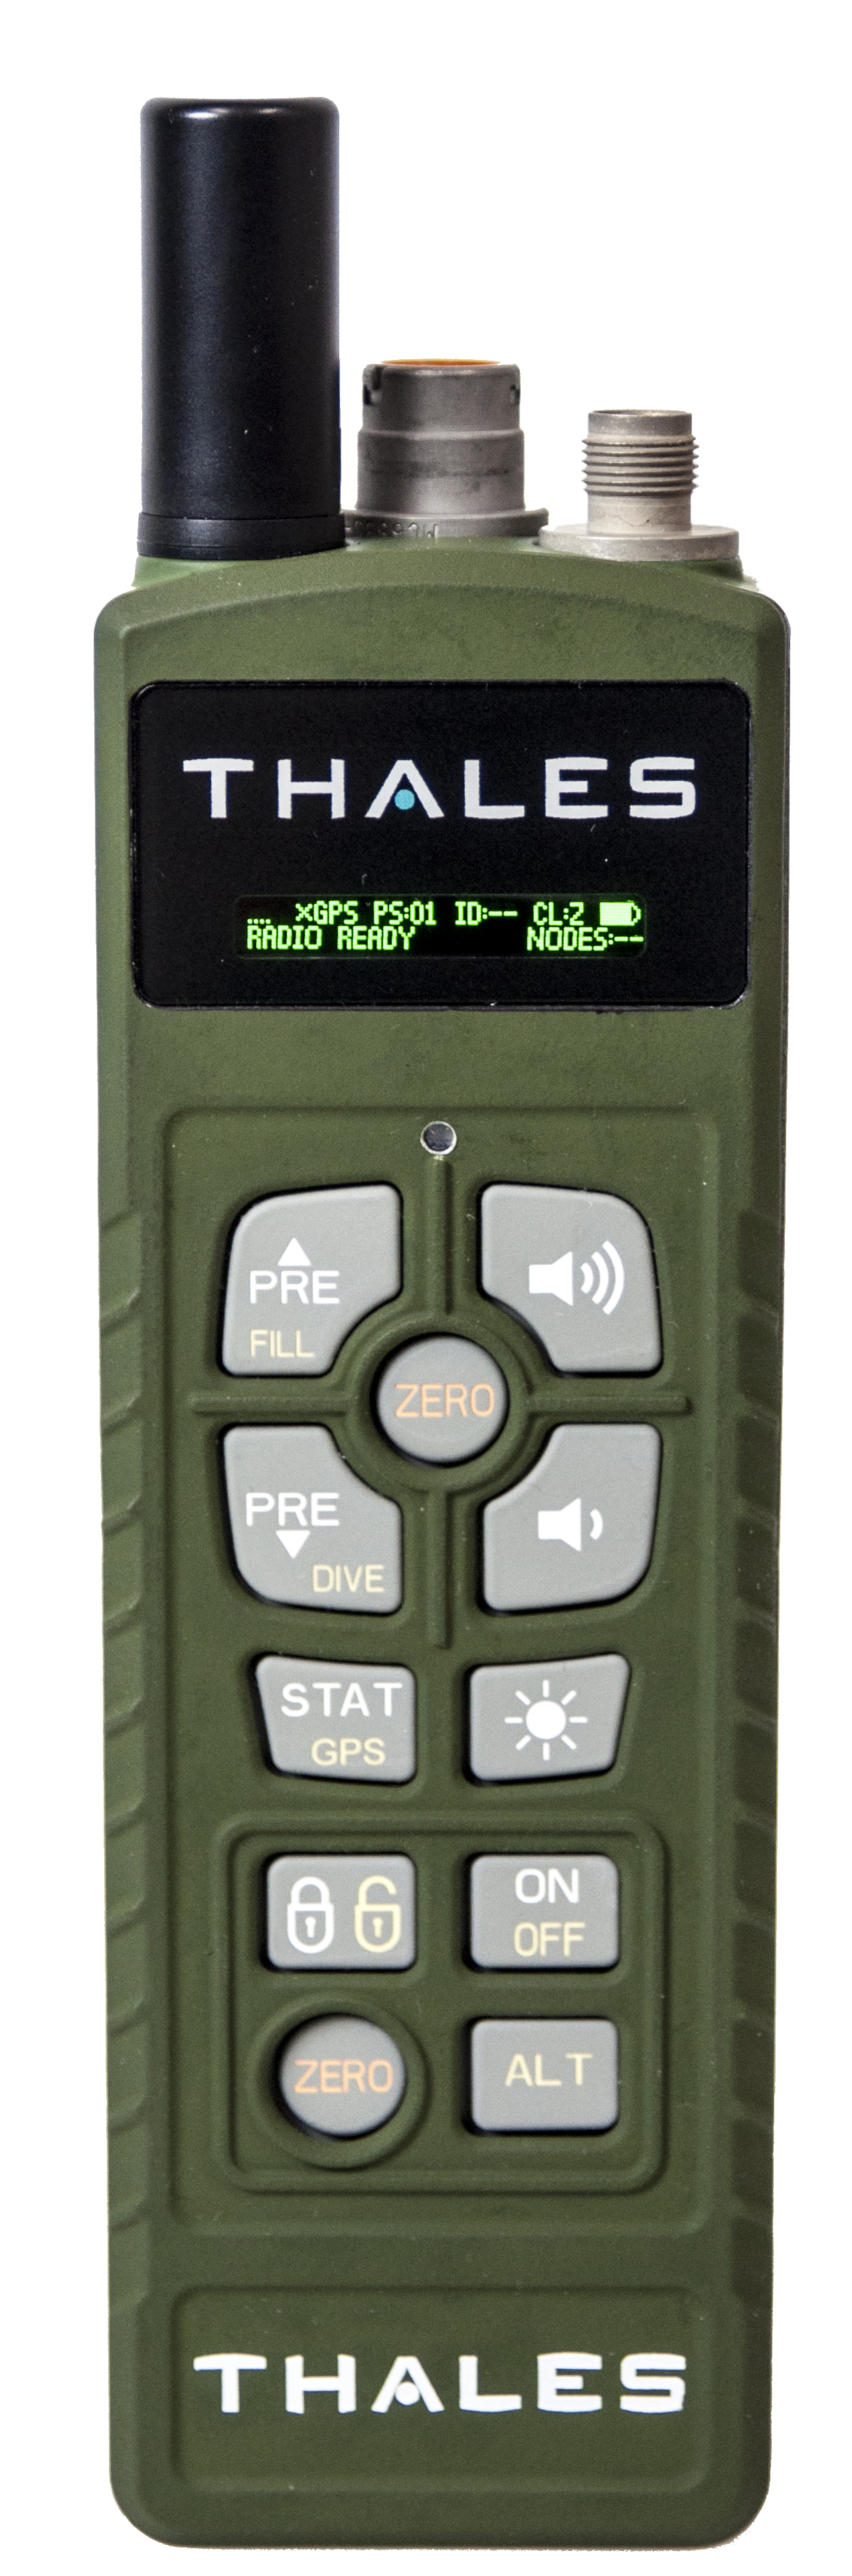 military radio voice changer application